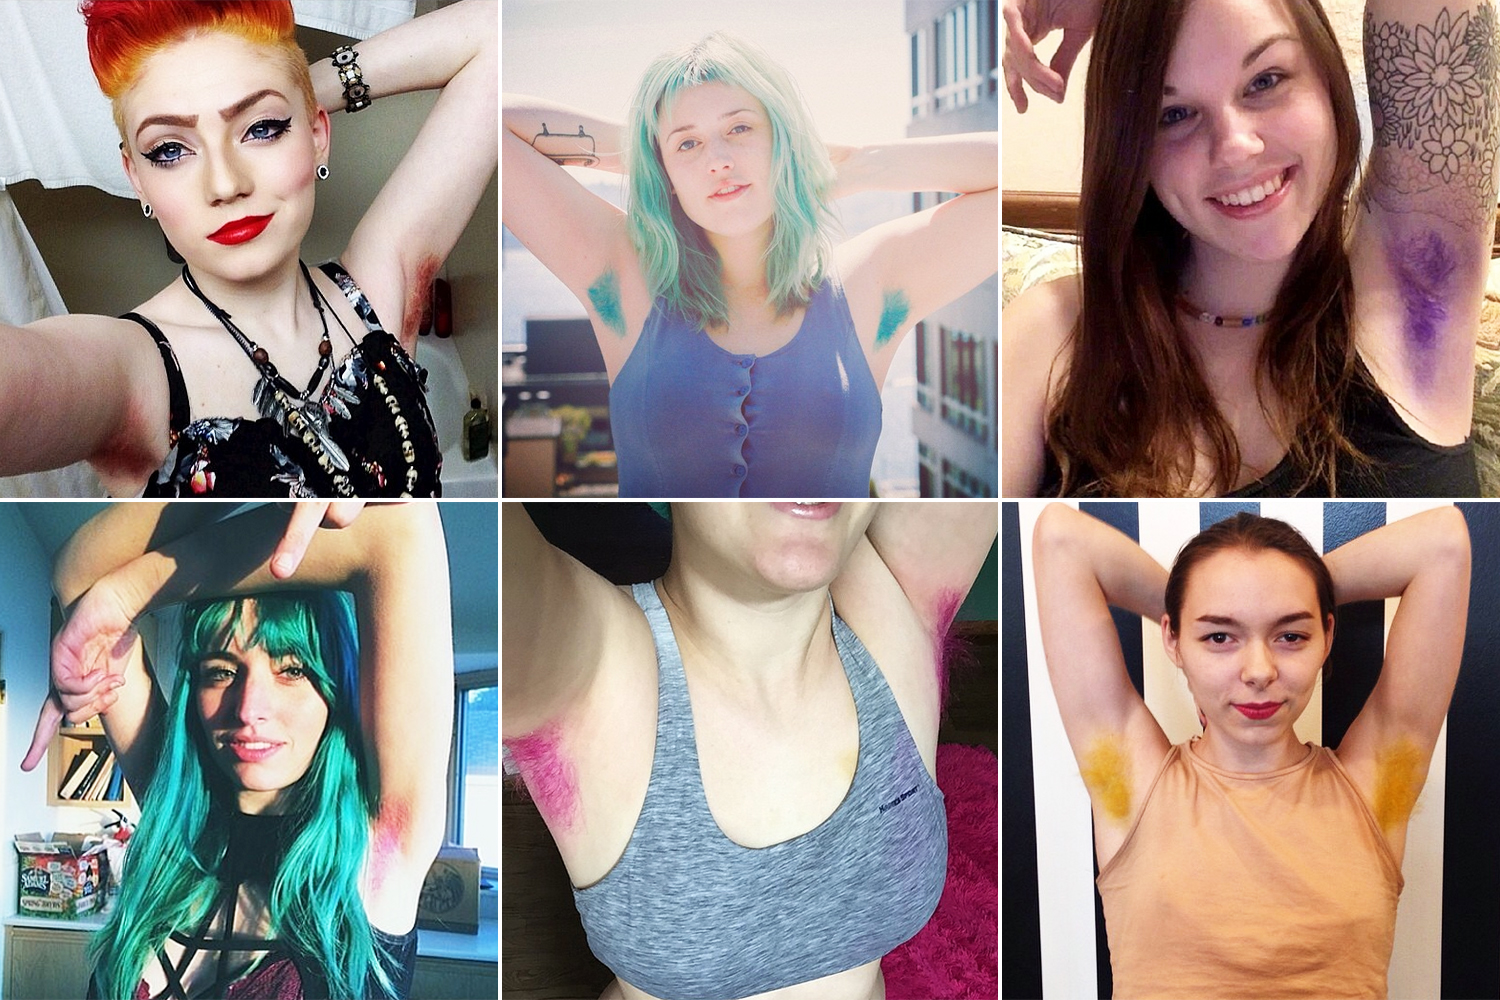 10. Dyed armpit hair